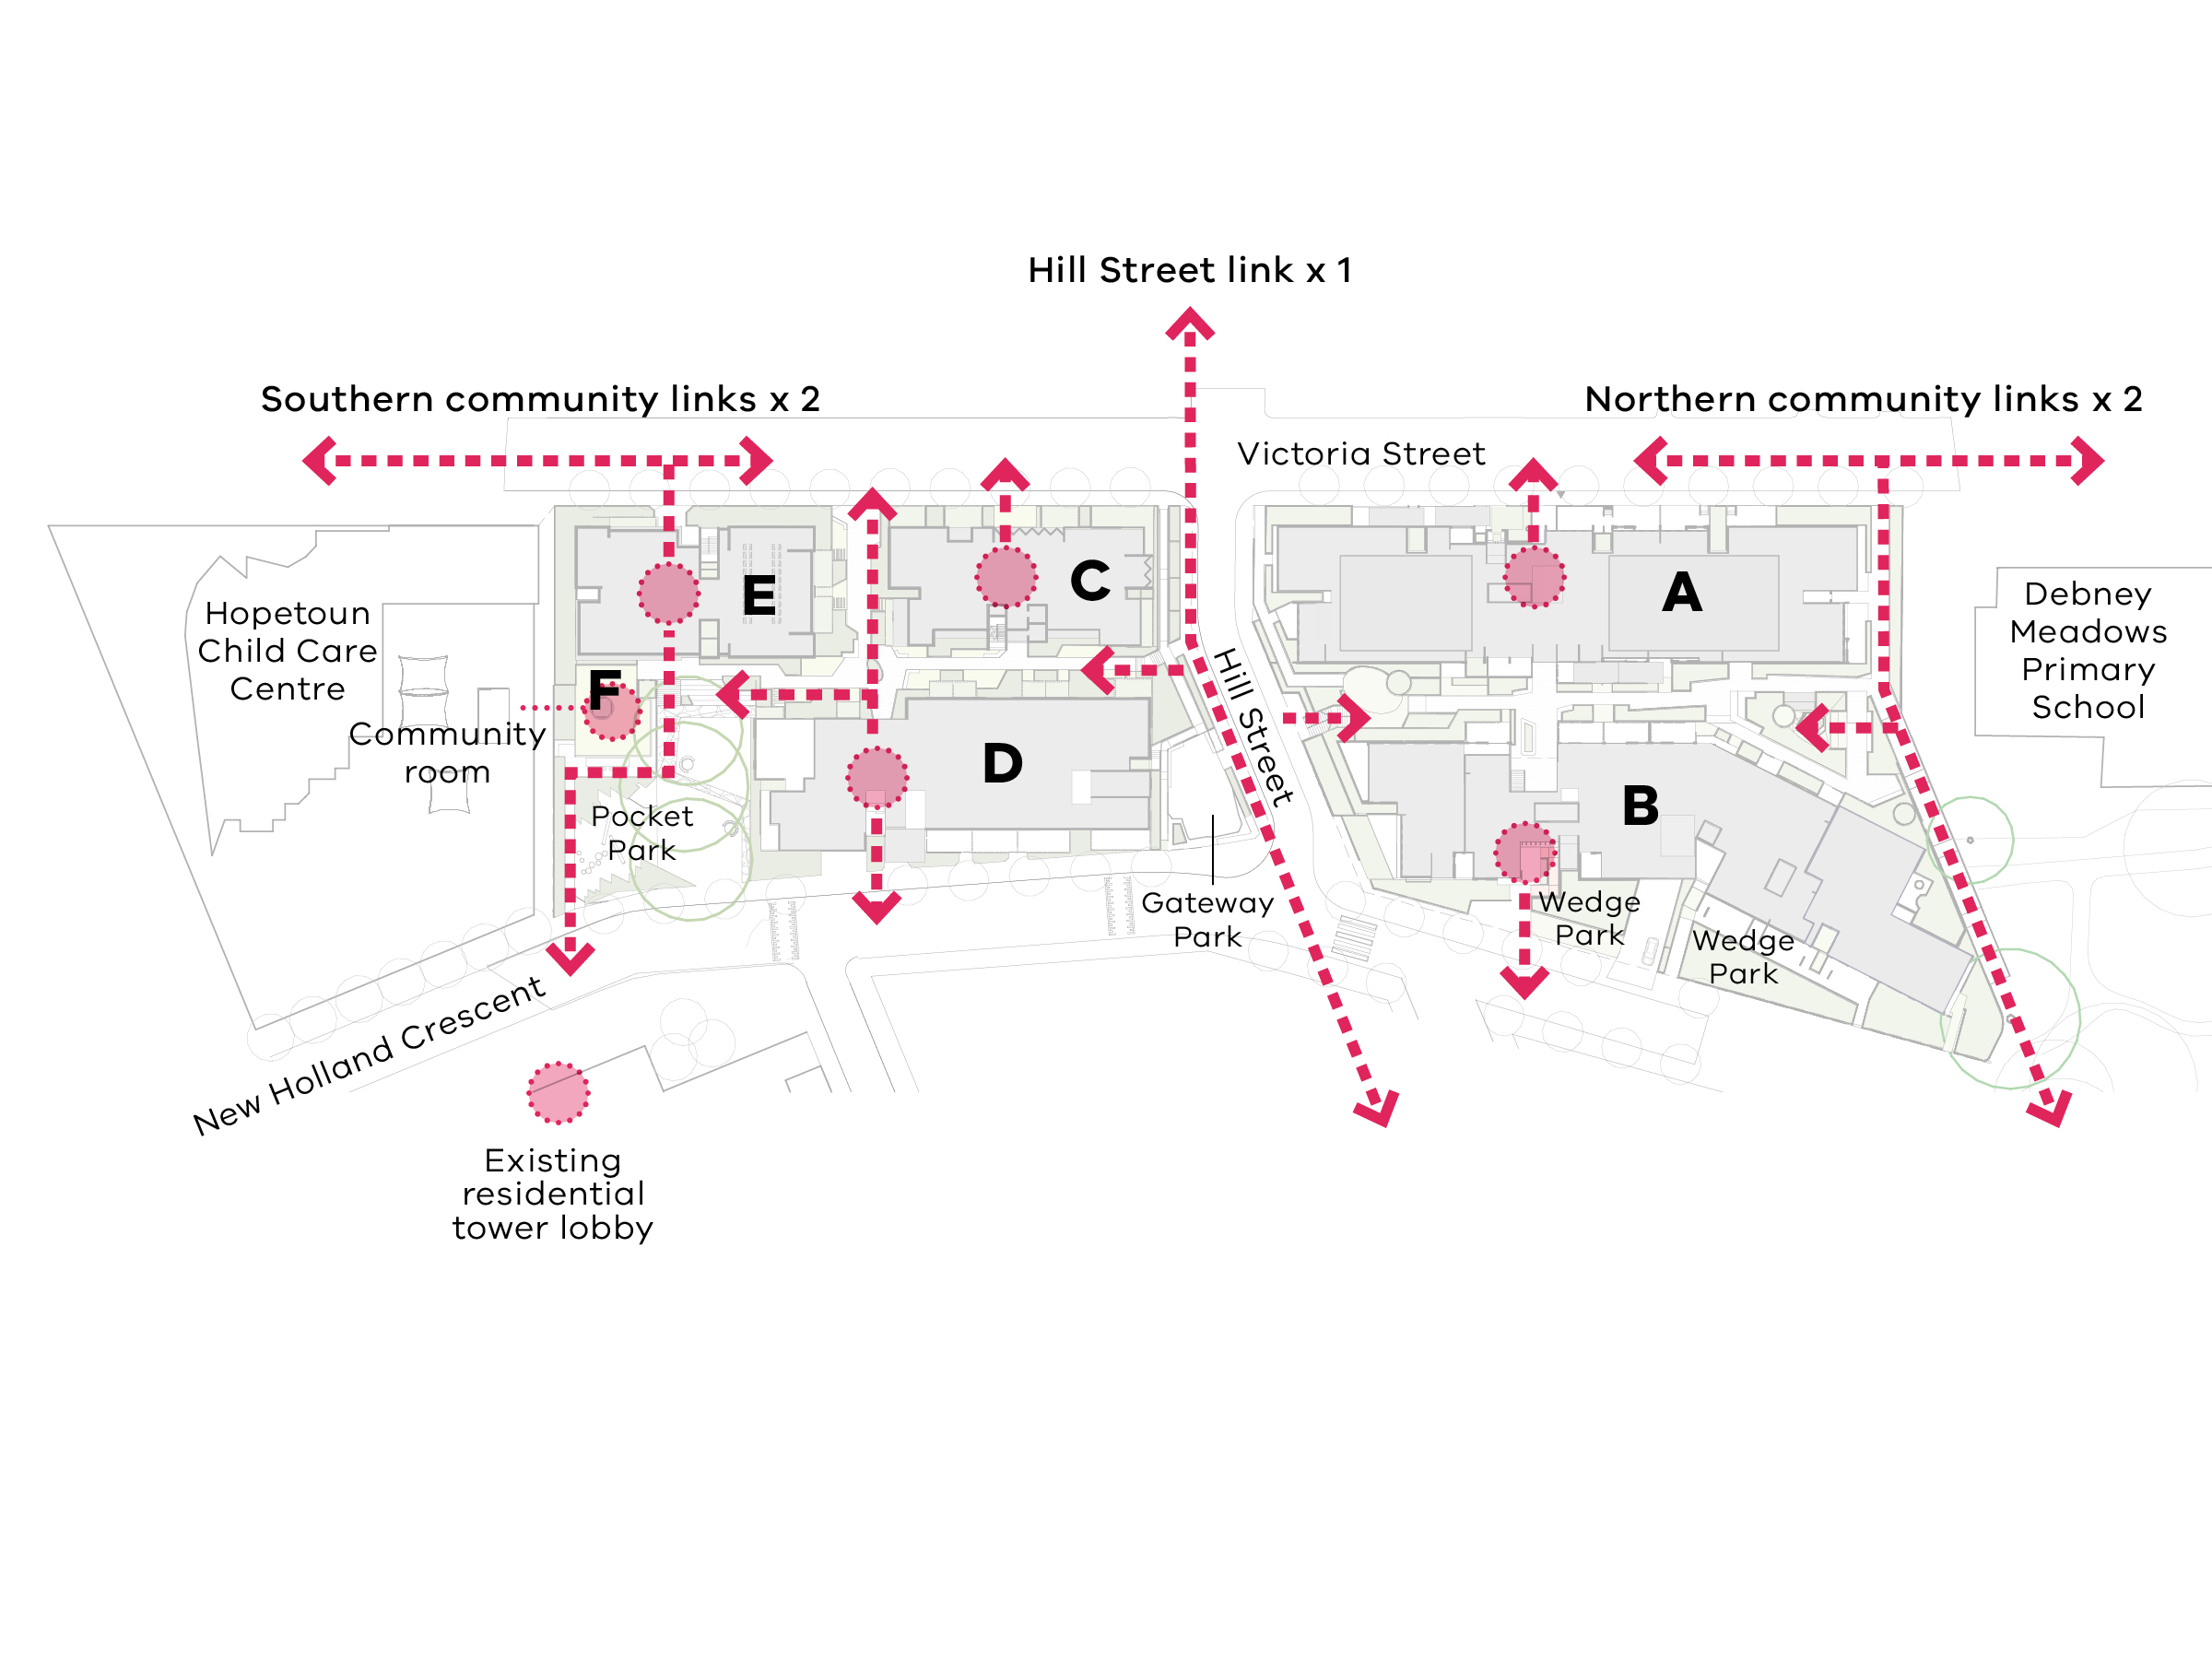 Diagram showing the connections in the new development. The first southern community link runs from Victoria Street (north and south) through building E lobby and the pocket park, past building F (community room) to New Holland Crescent near the existing